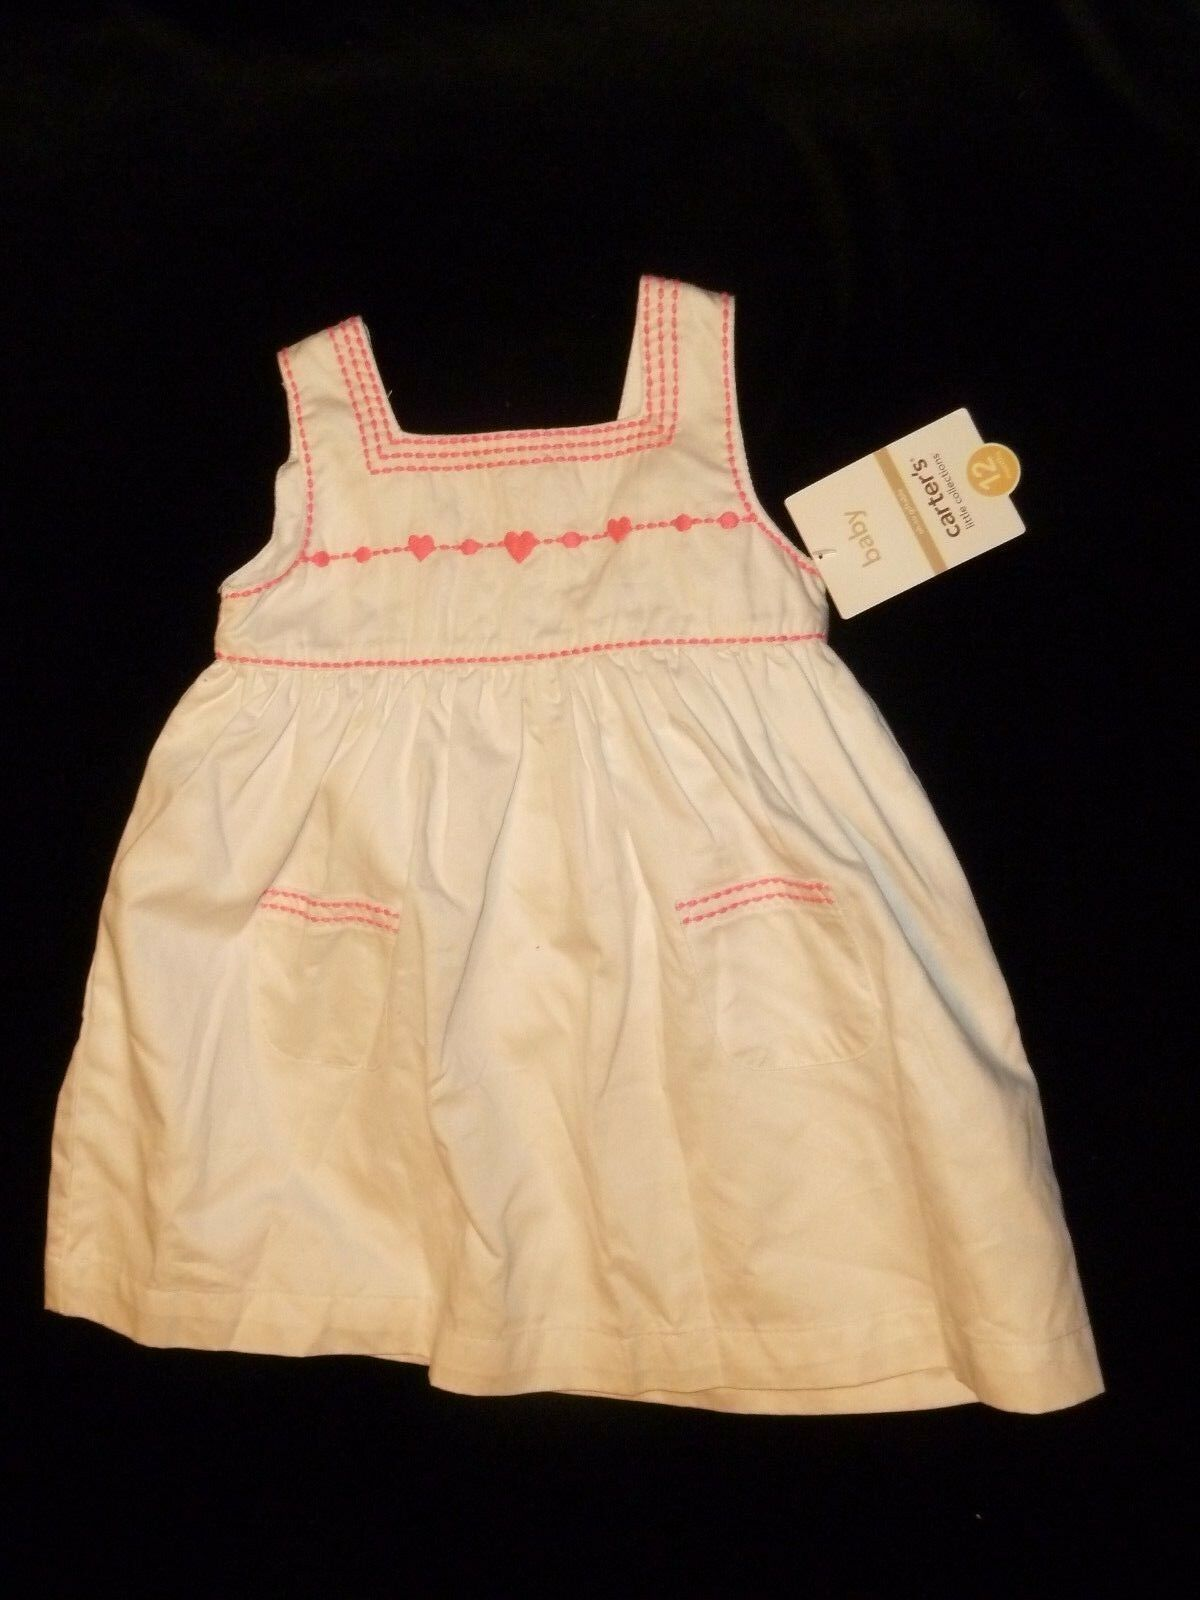 Primary image for CARTERS BABY GIRL SUMMER WHITE & HOT PINK SUN DRESS SUNDRESS 6-12 MOS NEW